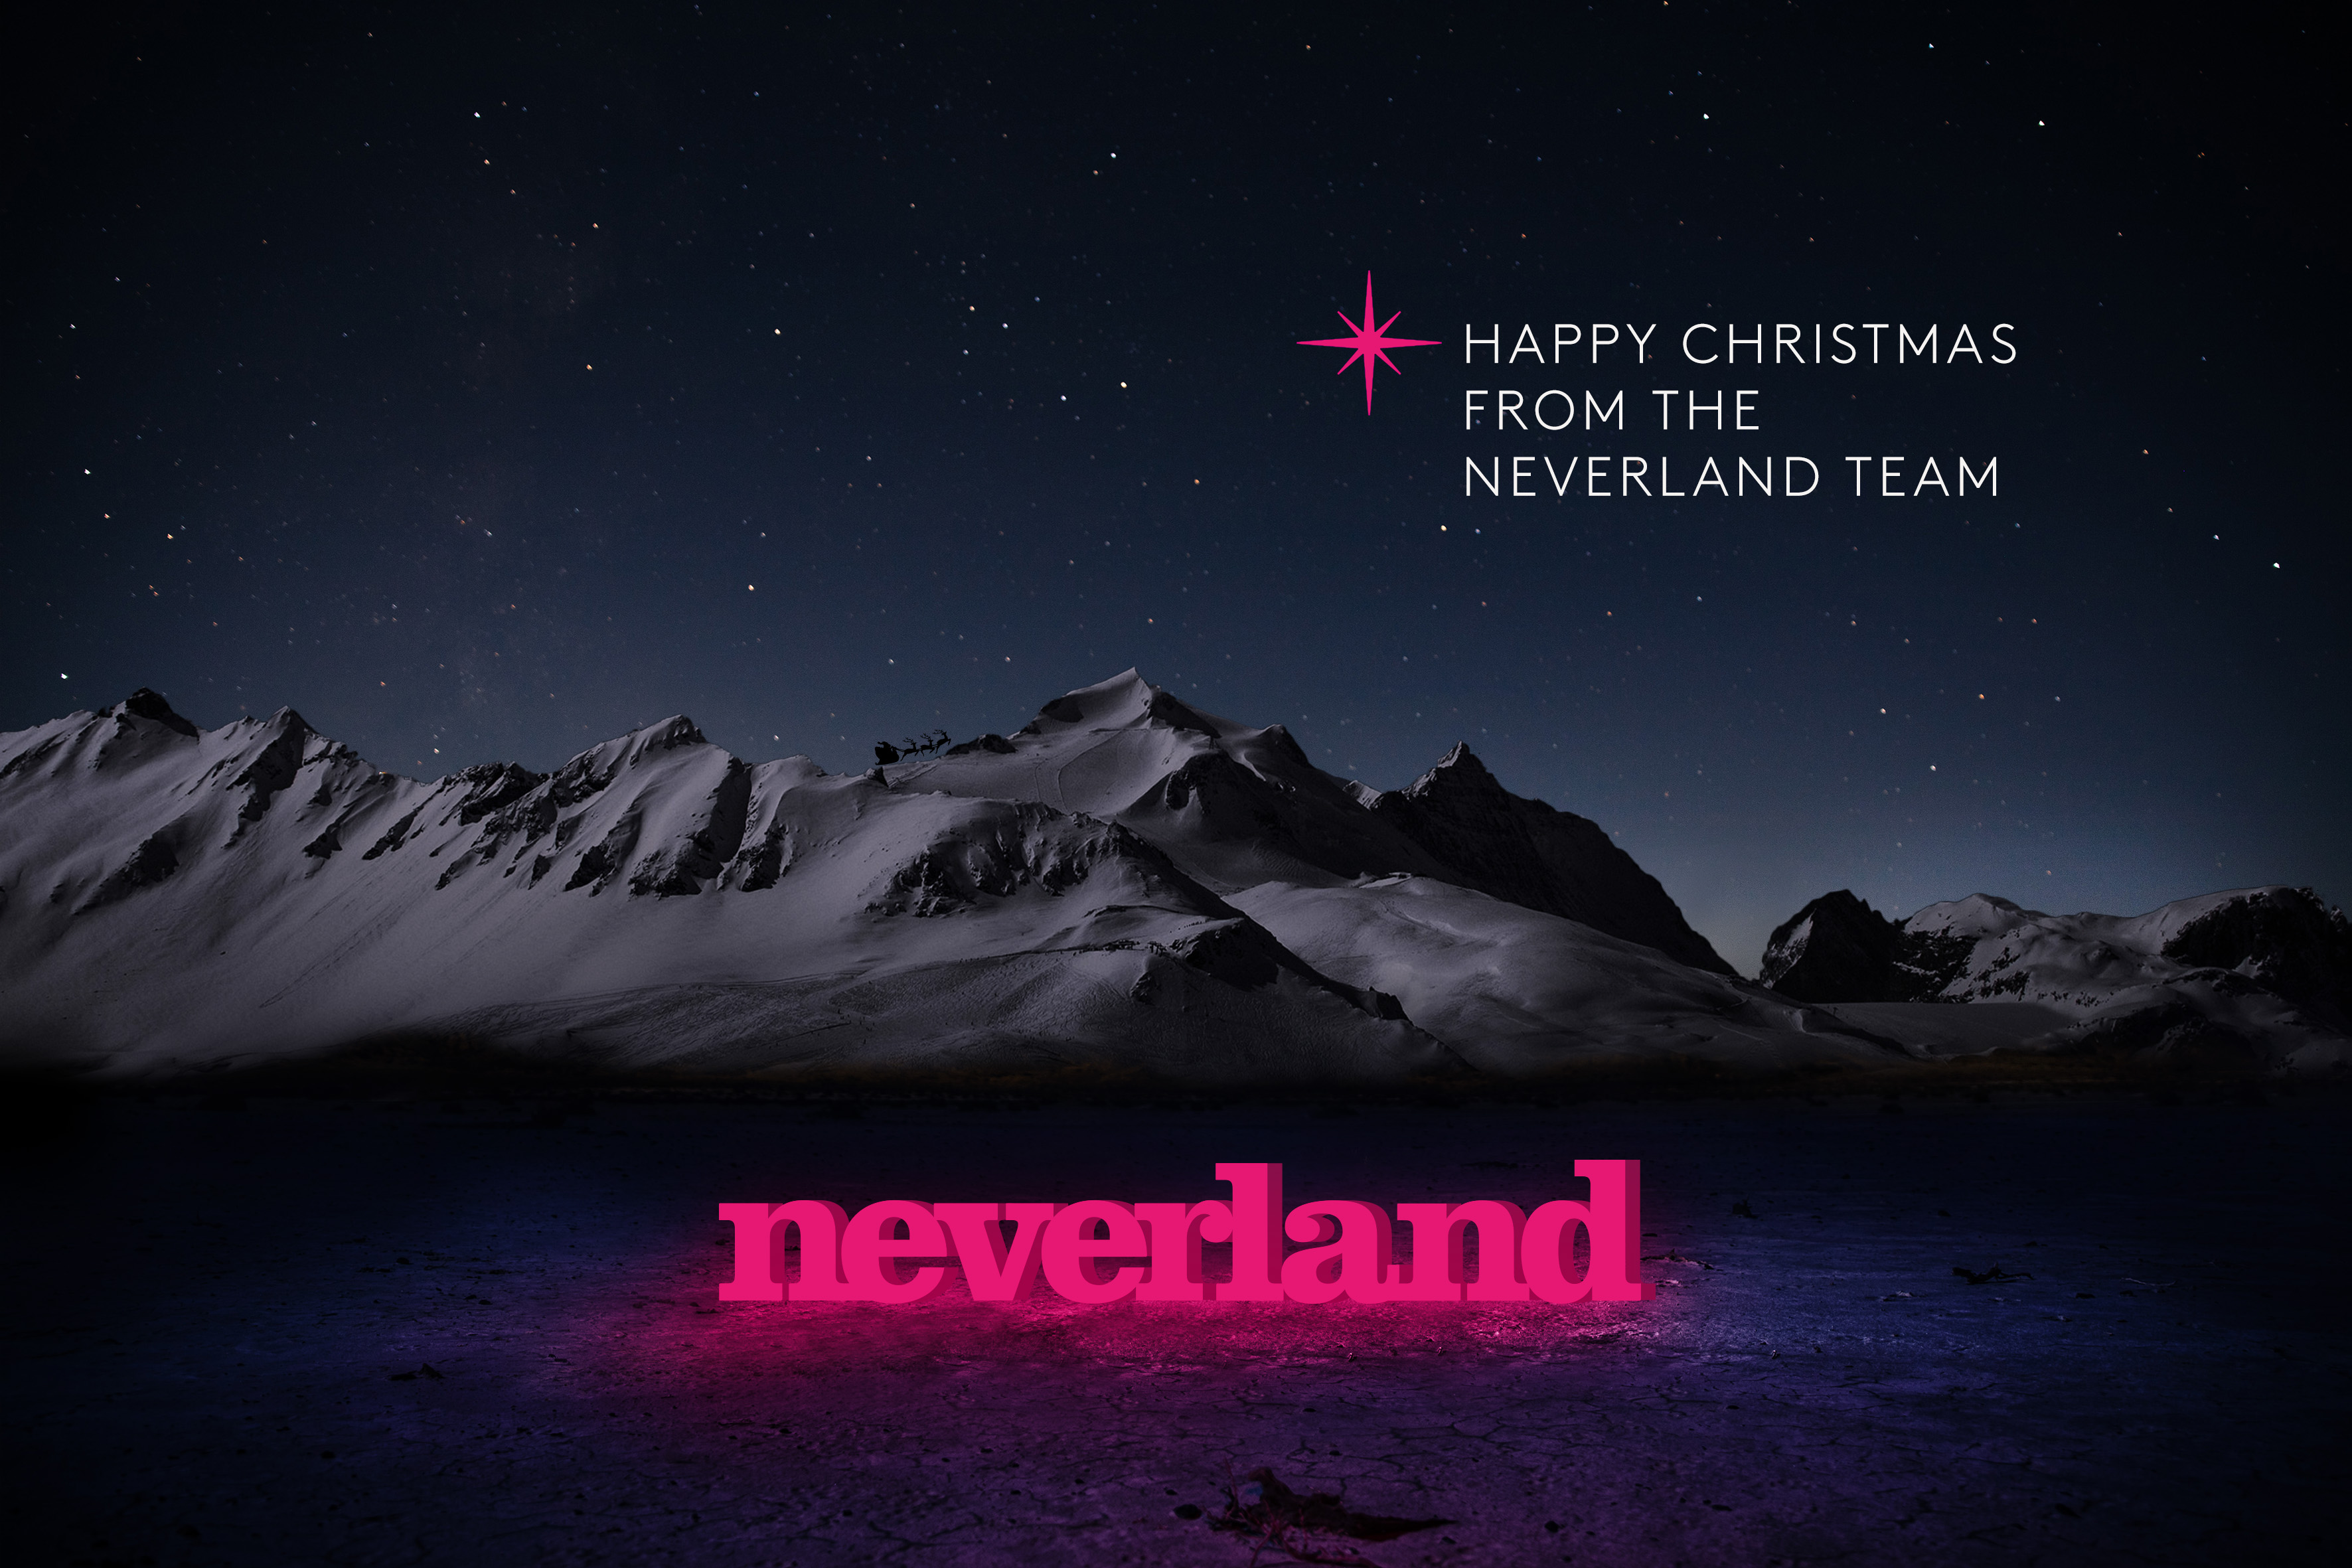 Neverland: agency is doling out stars